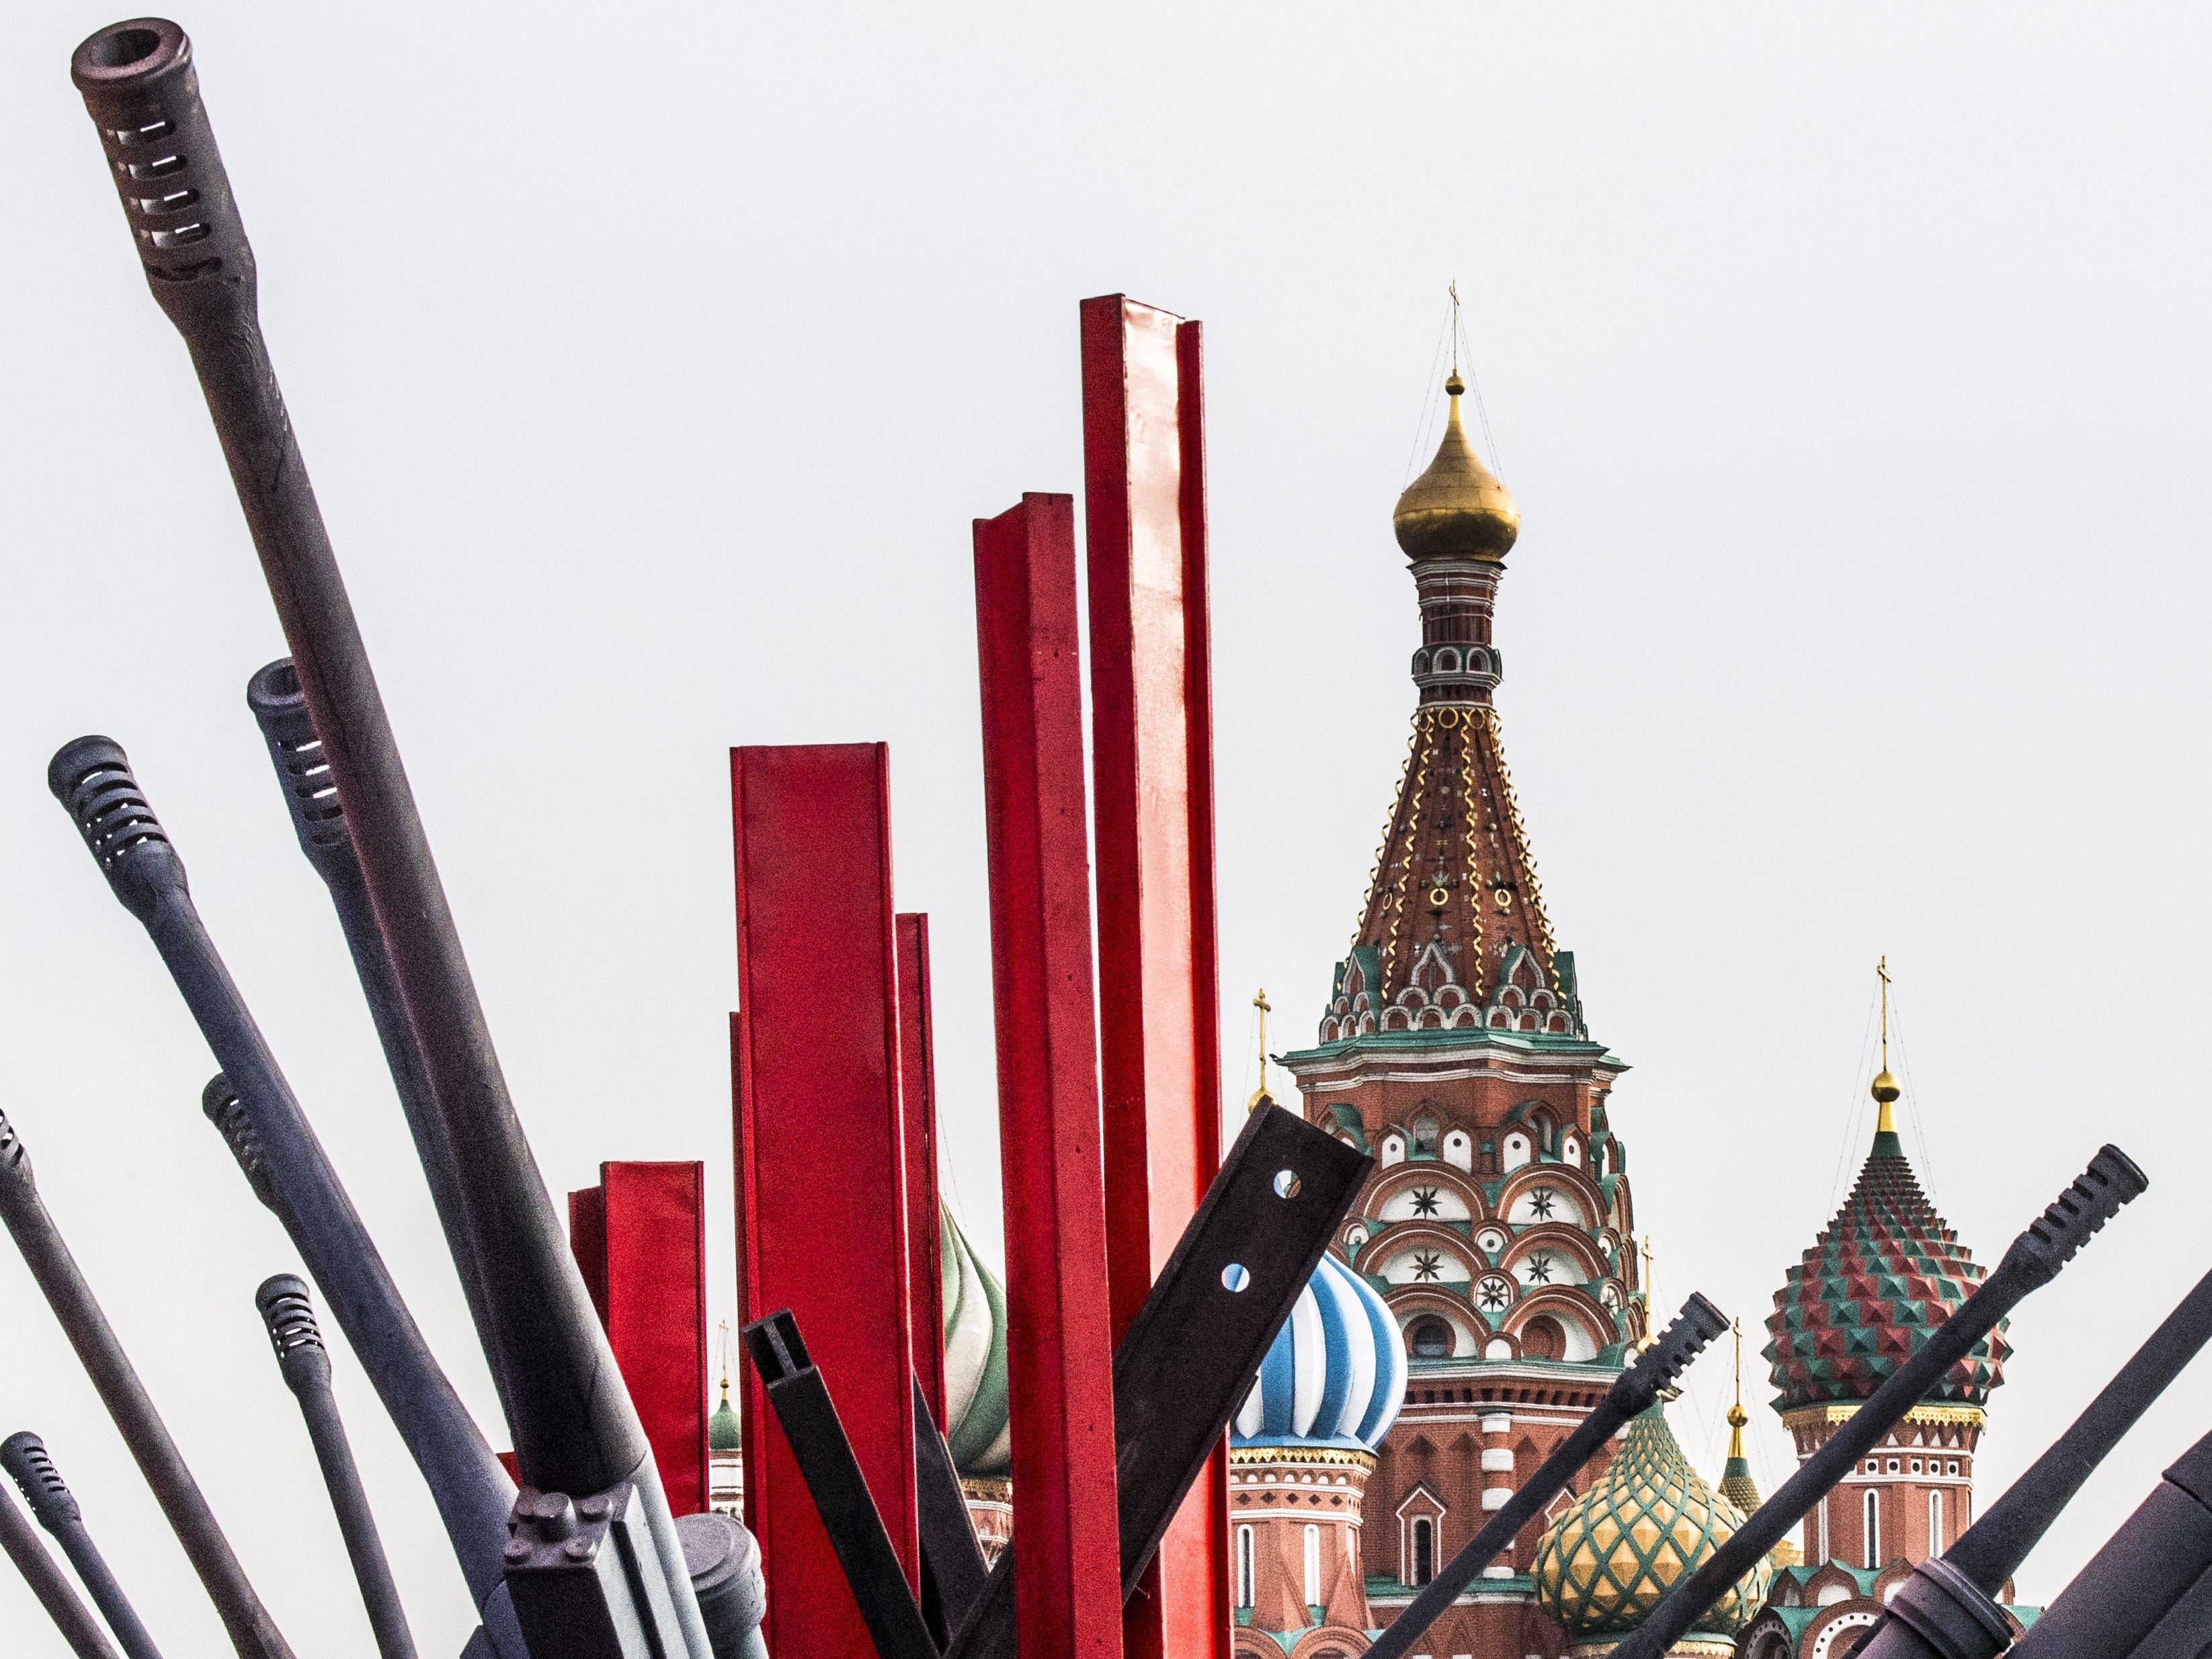 Replicas of WWII gun barrels stand on the Red Square for a military parade in Moscow on Friday, November 2, 2018. -The event marks the 77th anniversary of the 1941 historical parade, when Red Army soldiers marched past the Kremlin walls towards the front line to fight Nazi Germany troops during World War II.